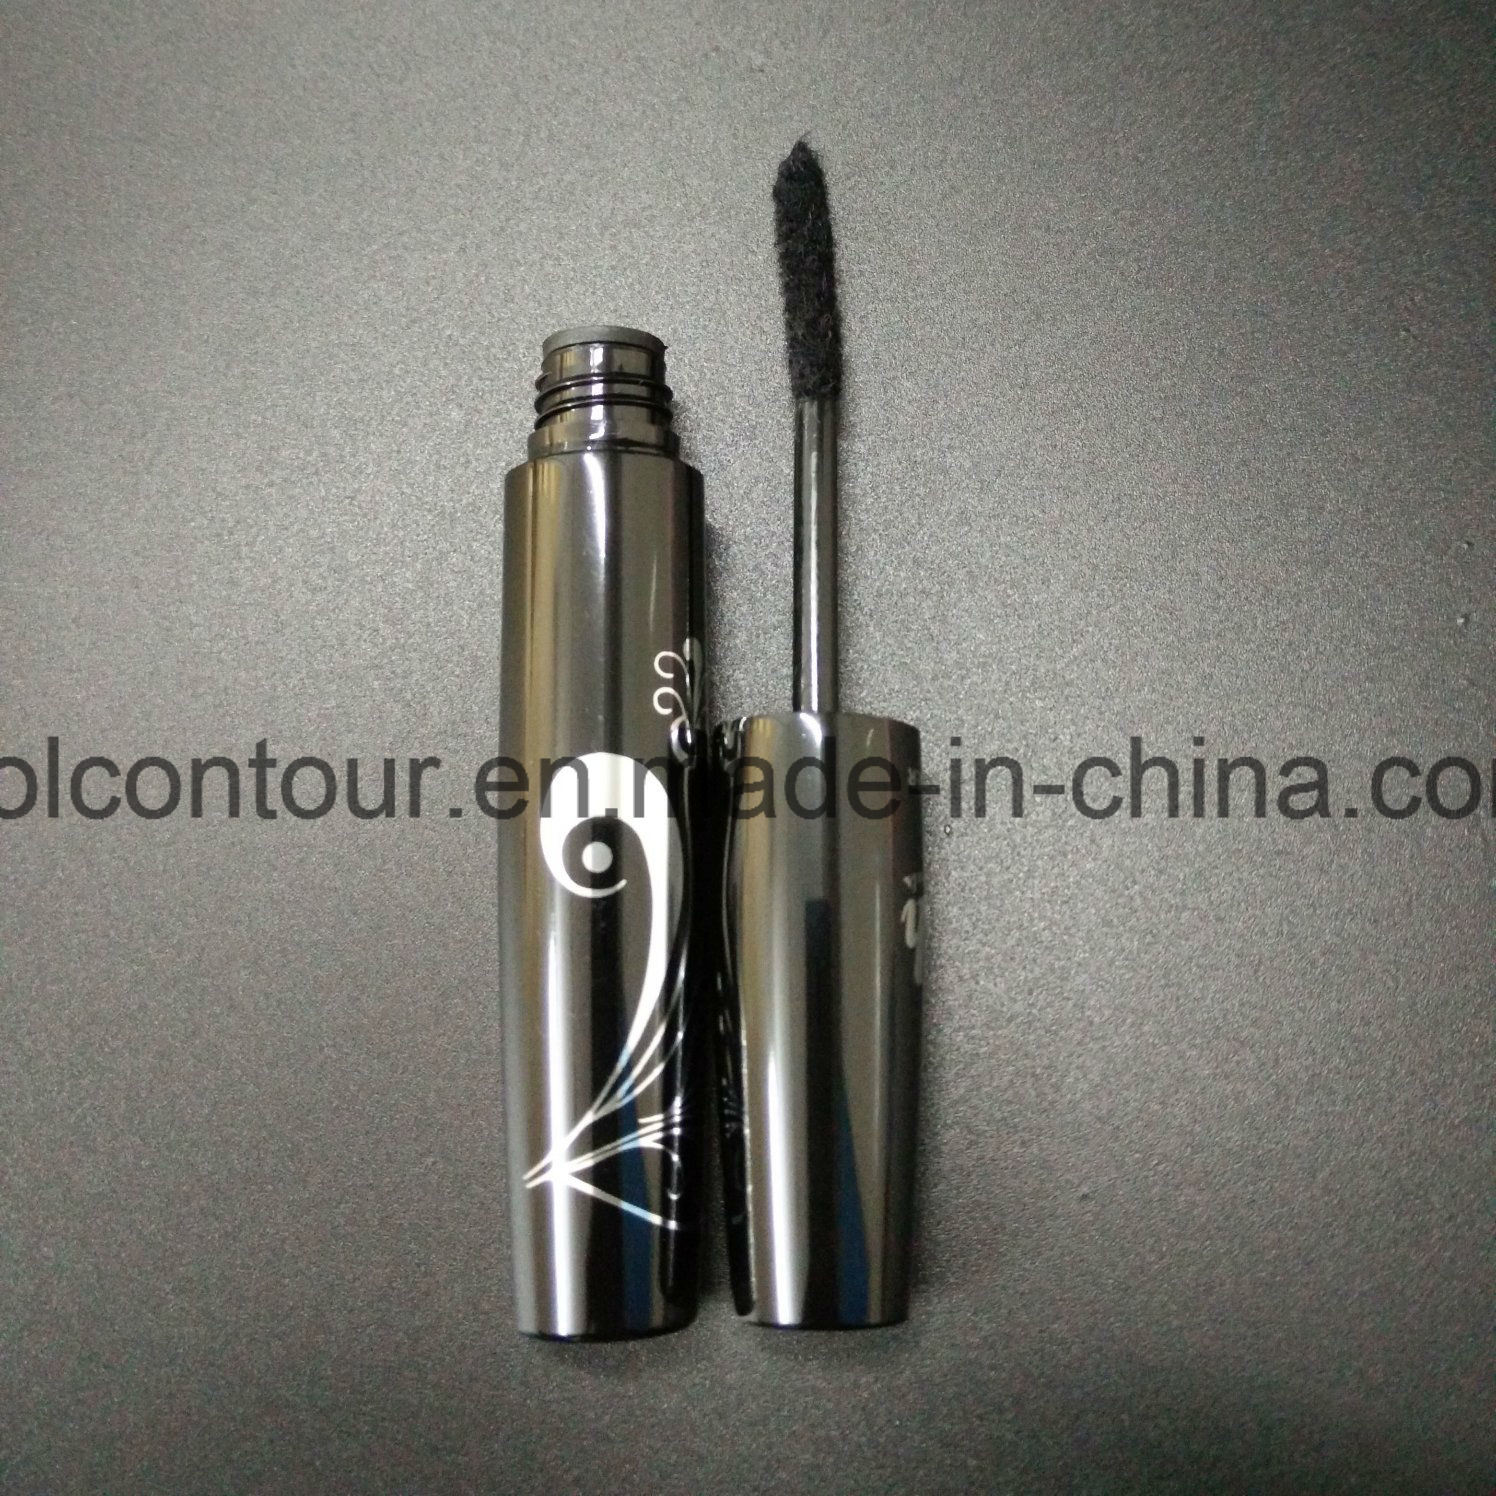 Make Your Own Brand Eyelash Enhancer Fiber Makeup Mascara